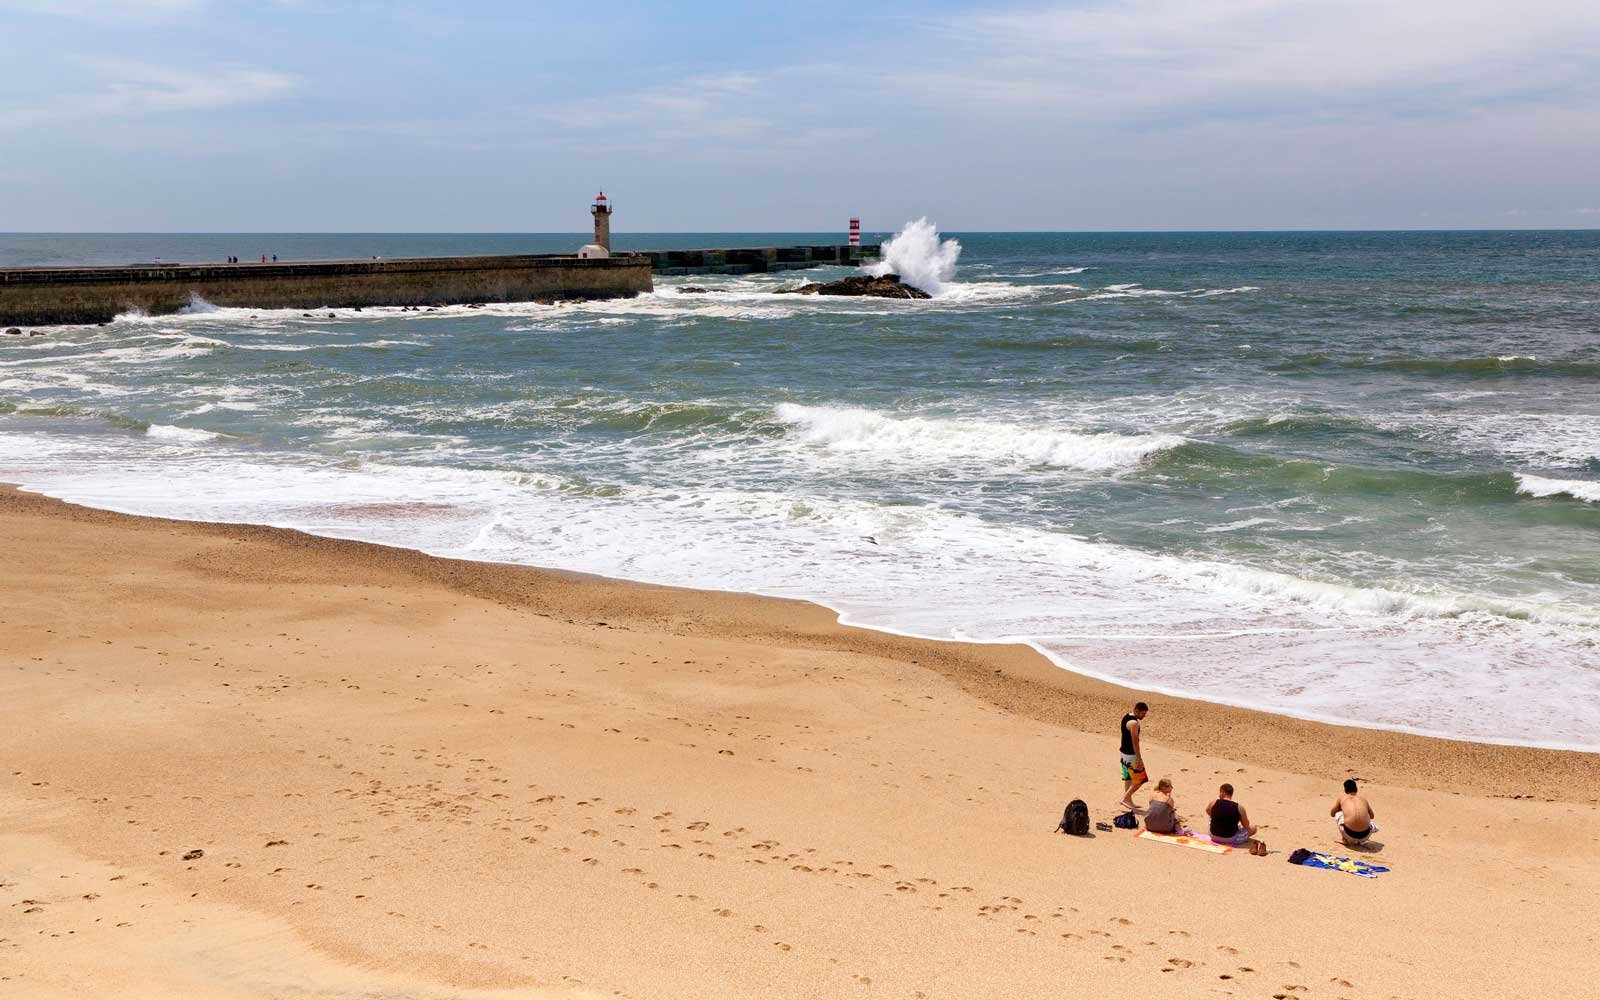 People on the  Praia dos ingleses beach with view of Foz do Douro lighthouse